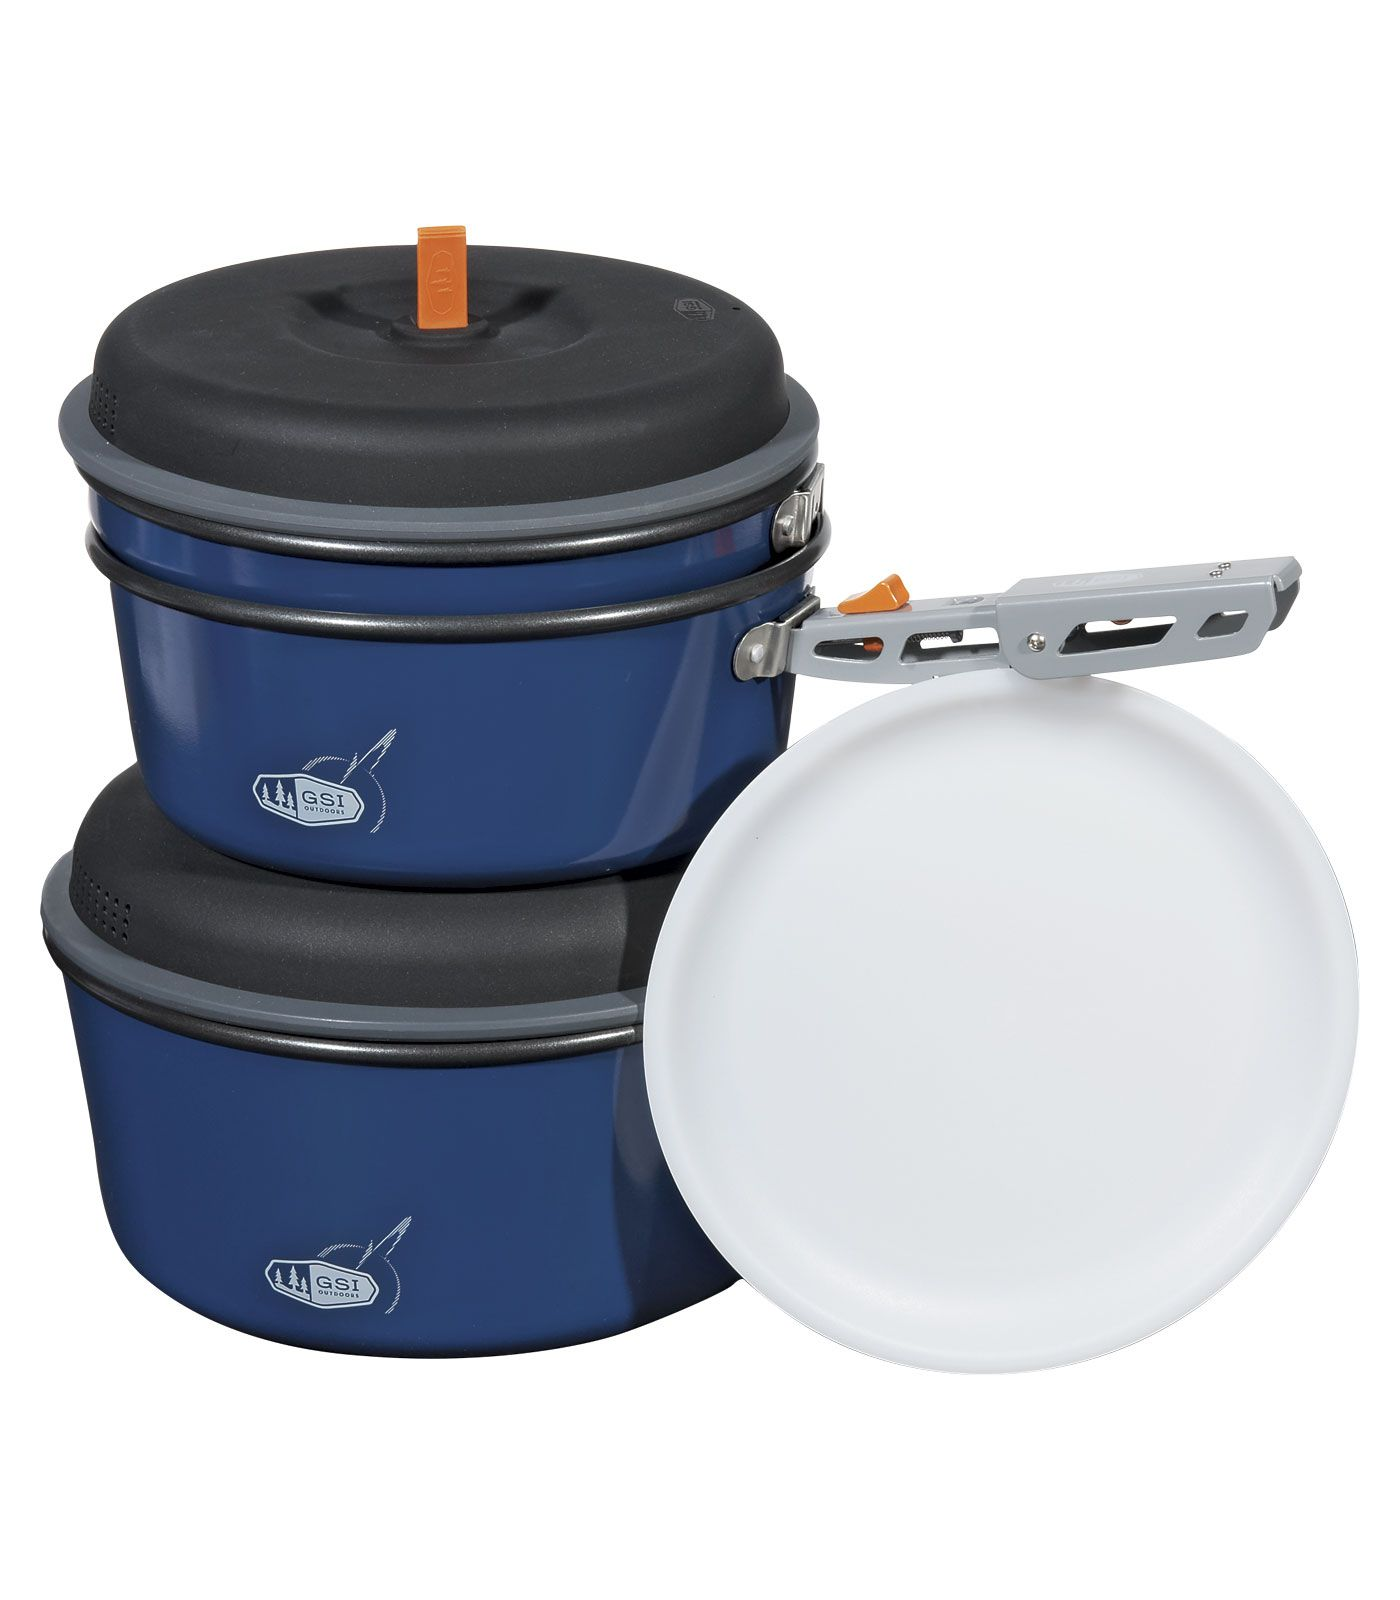 7-piece cooking set for 3 people Non-stick aluminum potsIncluding: 3-litre pot, 2-litre pot, 8